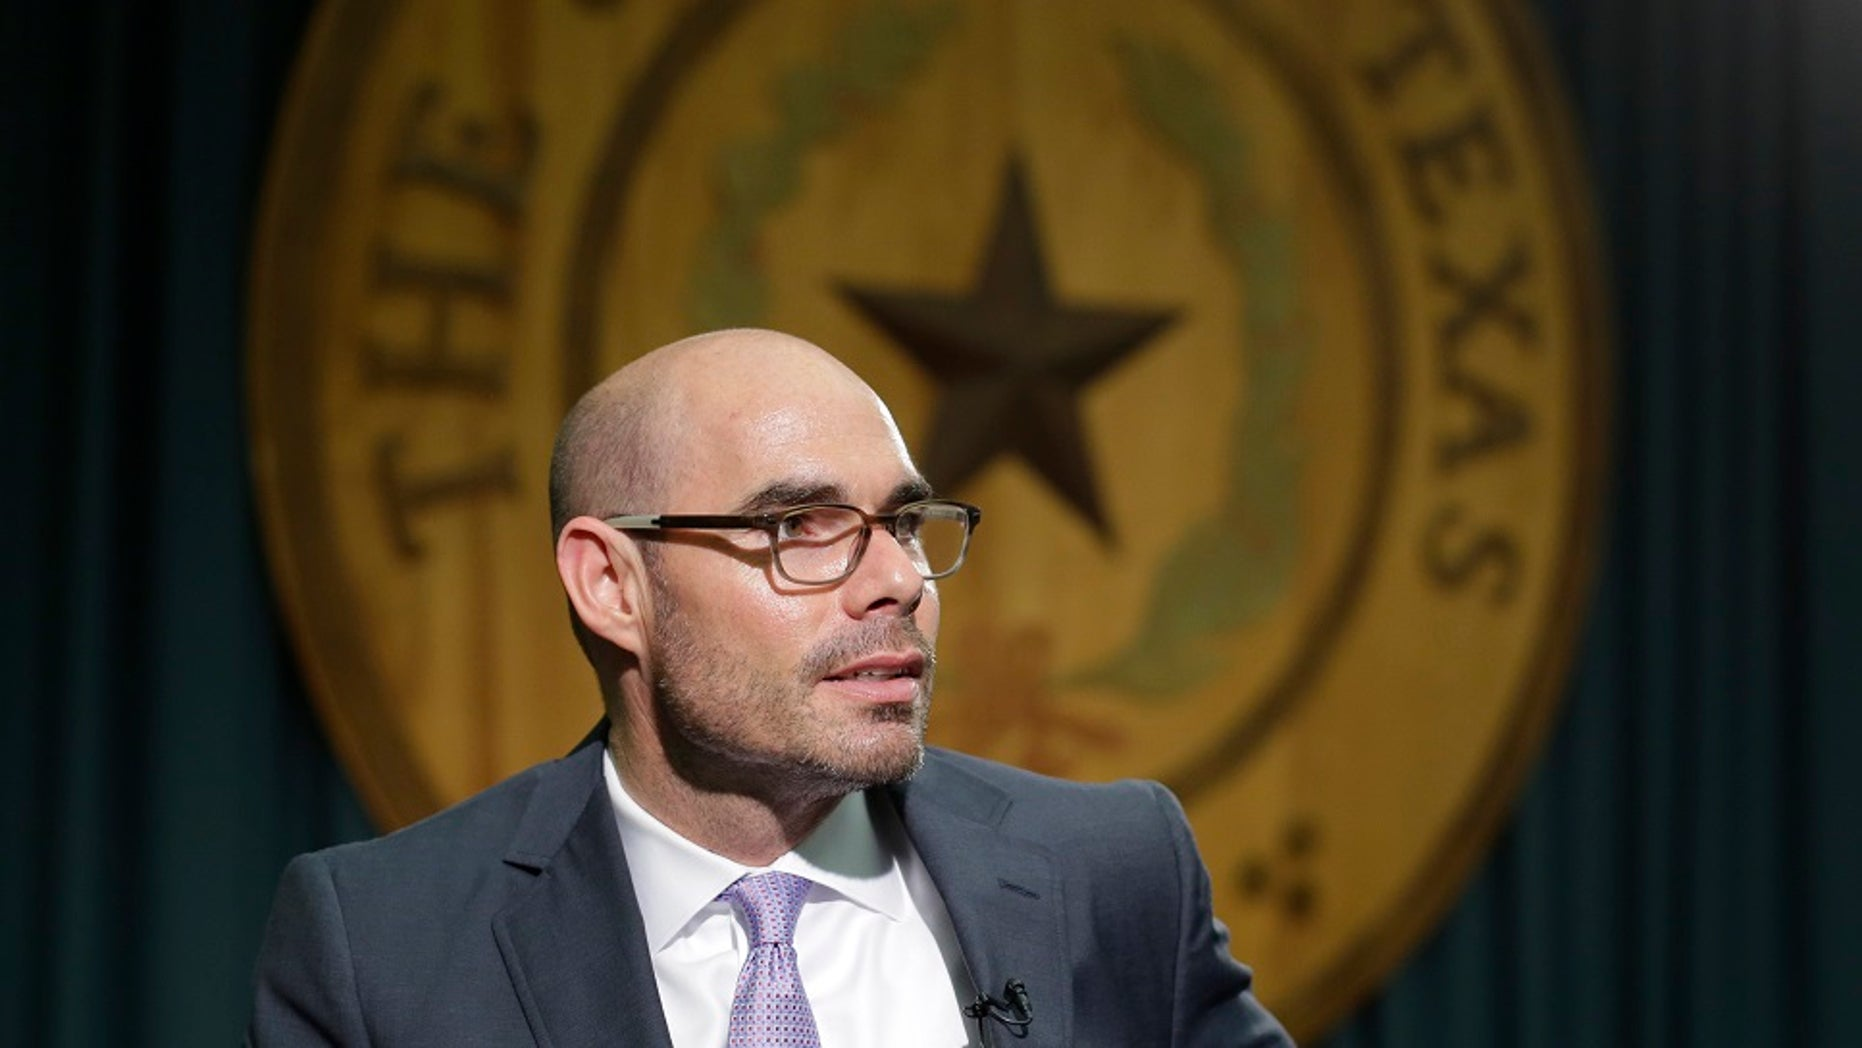 Texas Rep. Dennis Bonnen, R-Angleton, talks to the media at the Texas Capitol in Austin, Texas. A Texas gun rights activist drove to the homes of Republican legislators he blamed for stalling proposals to expand gun laws, prompting state troopers to monitor Bonnen's, the now House speaker, family residence. (Associated Press)